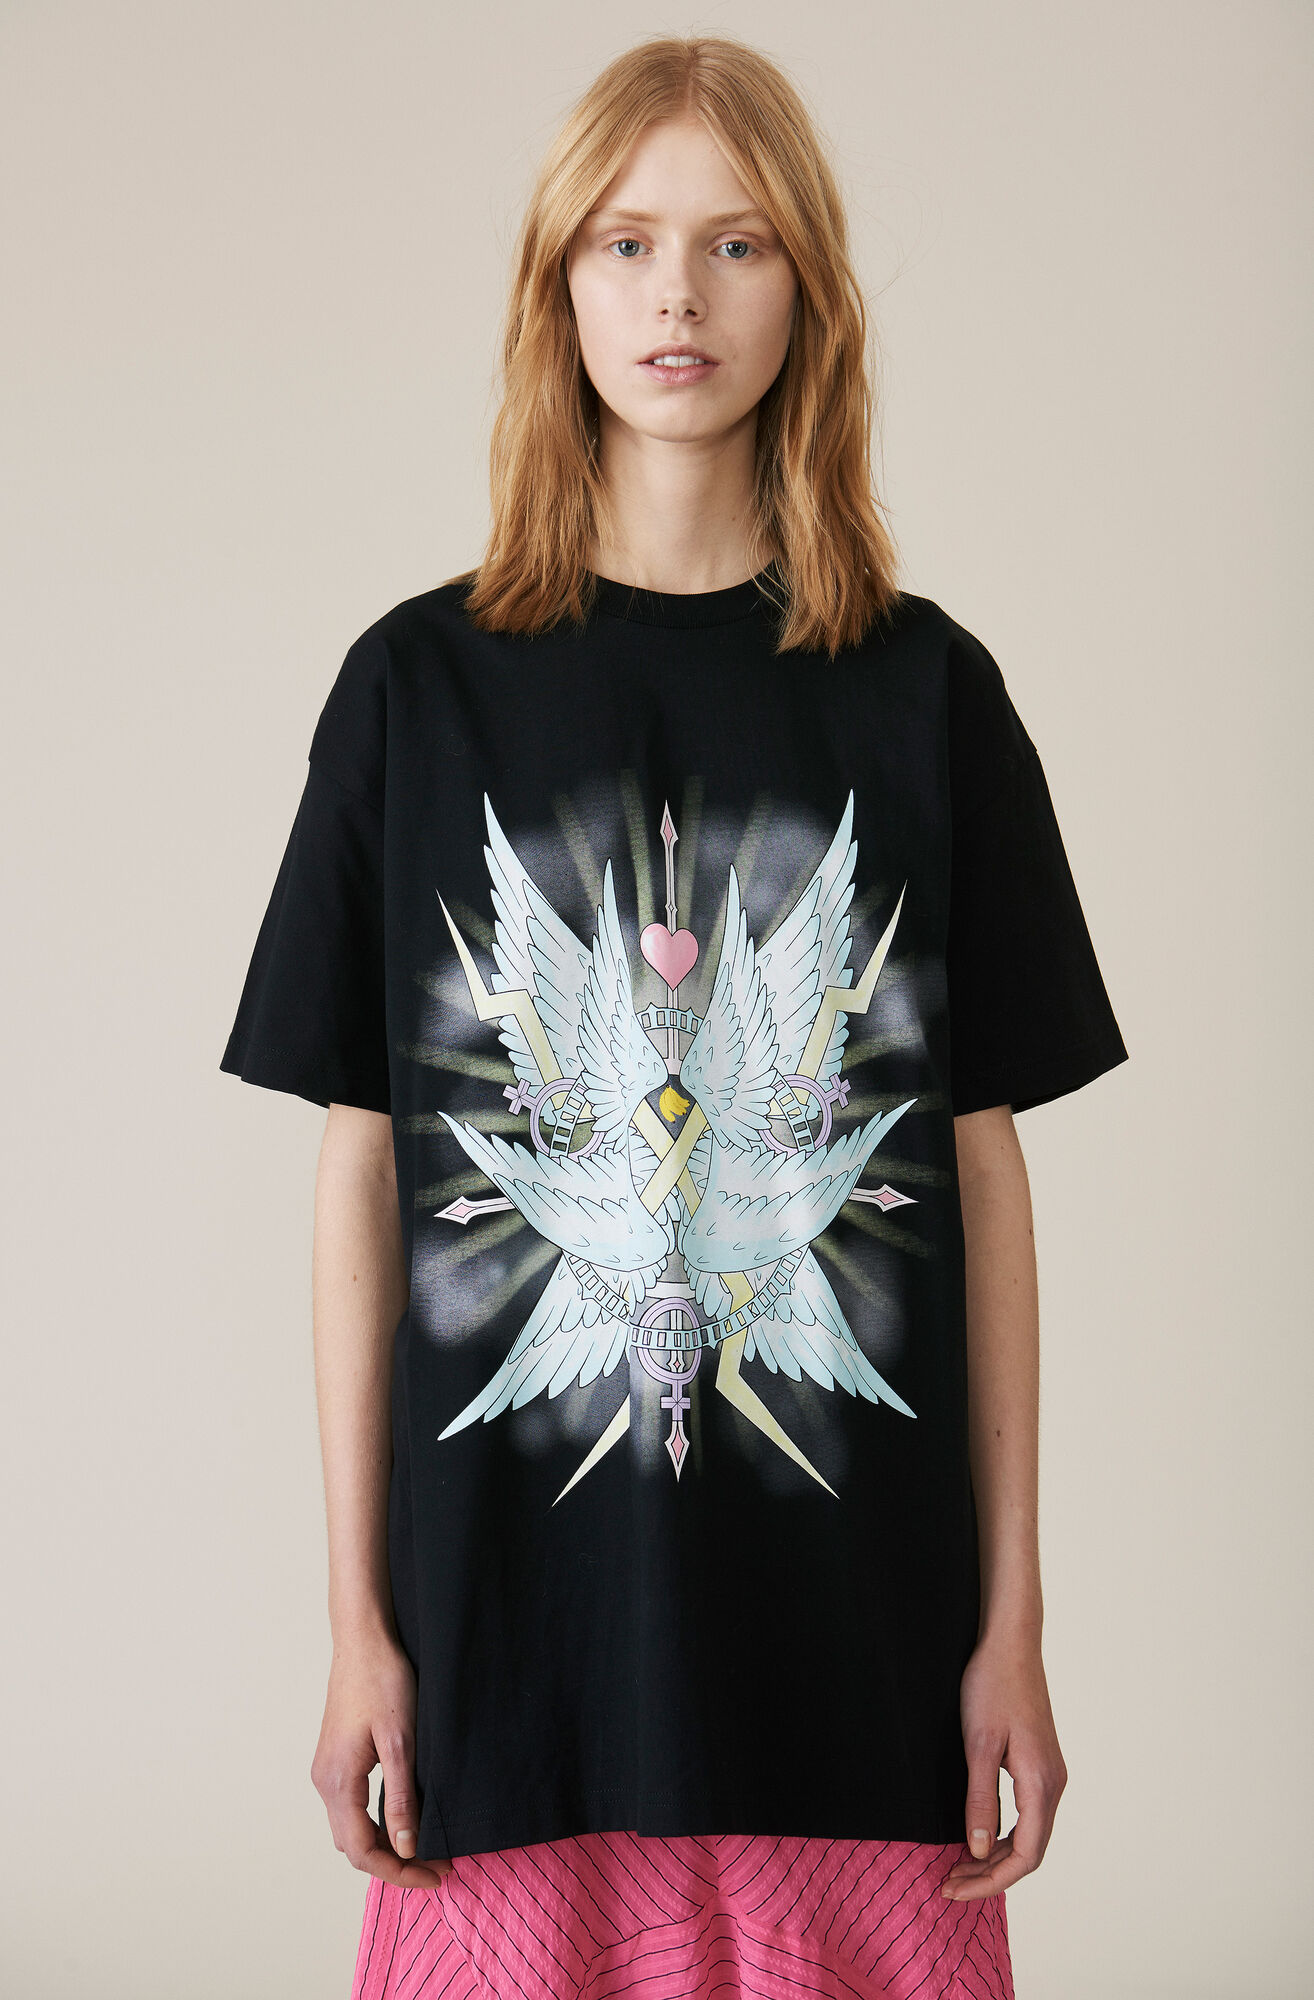 Johnson Oversized T-shirt, Wings, Black, hi-res